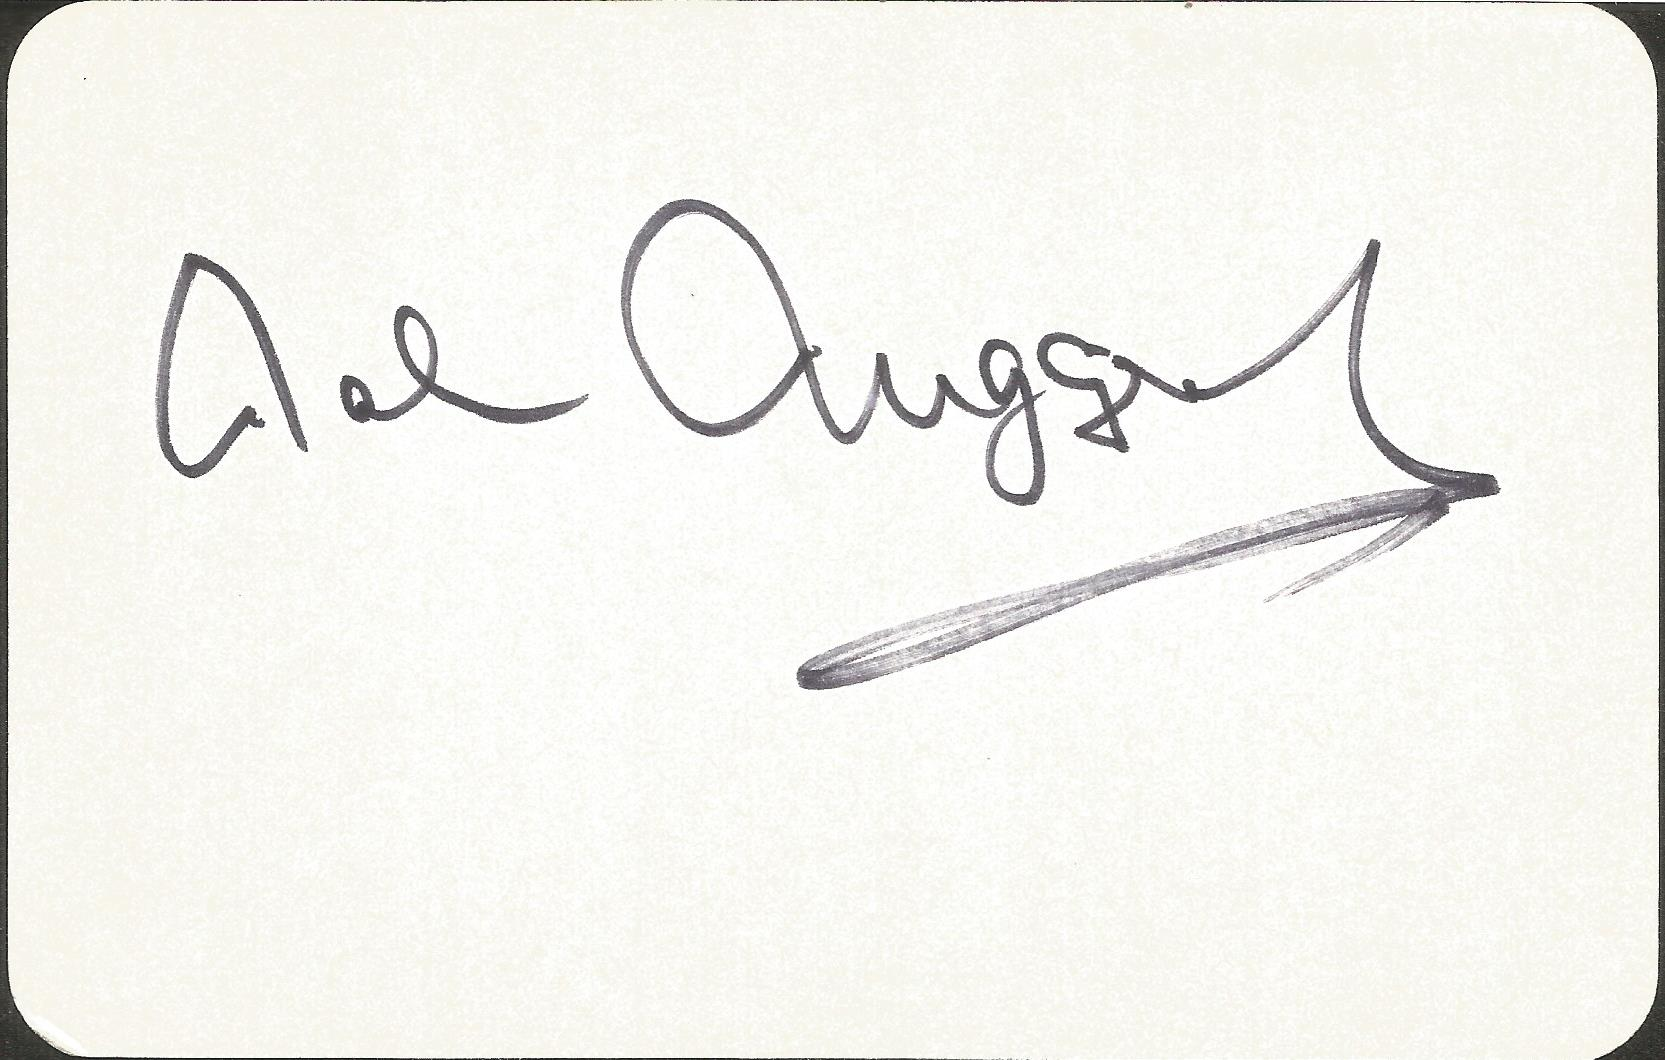 Malcolm Muggeridge signed 4 x3 cream card. Good condition. All autographs come with a Certificate of